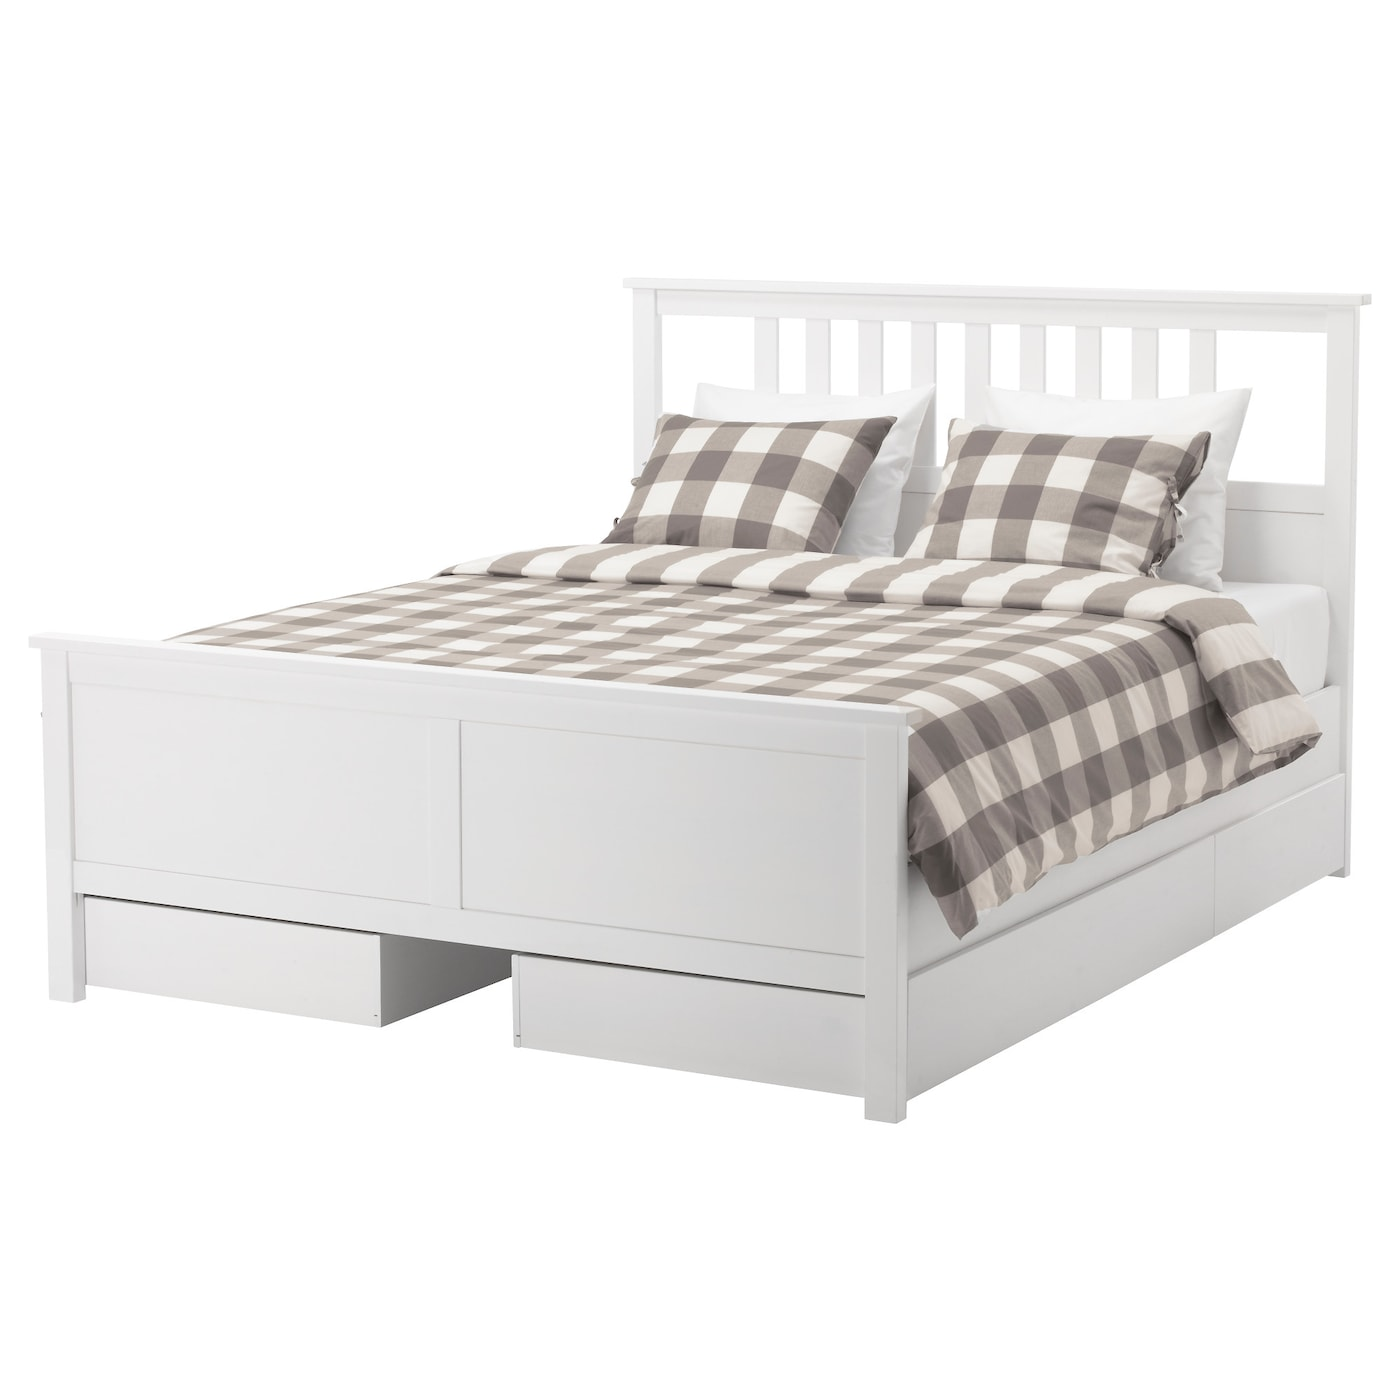 Hemnes bed frame with 4 storage boxes white stain lur y for 120 bett ikea